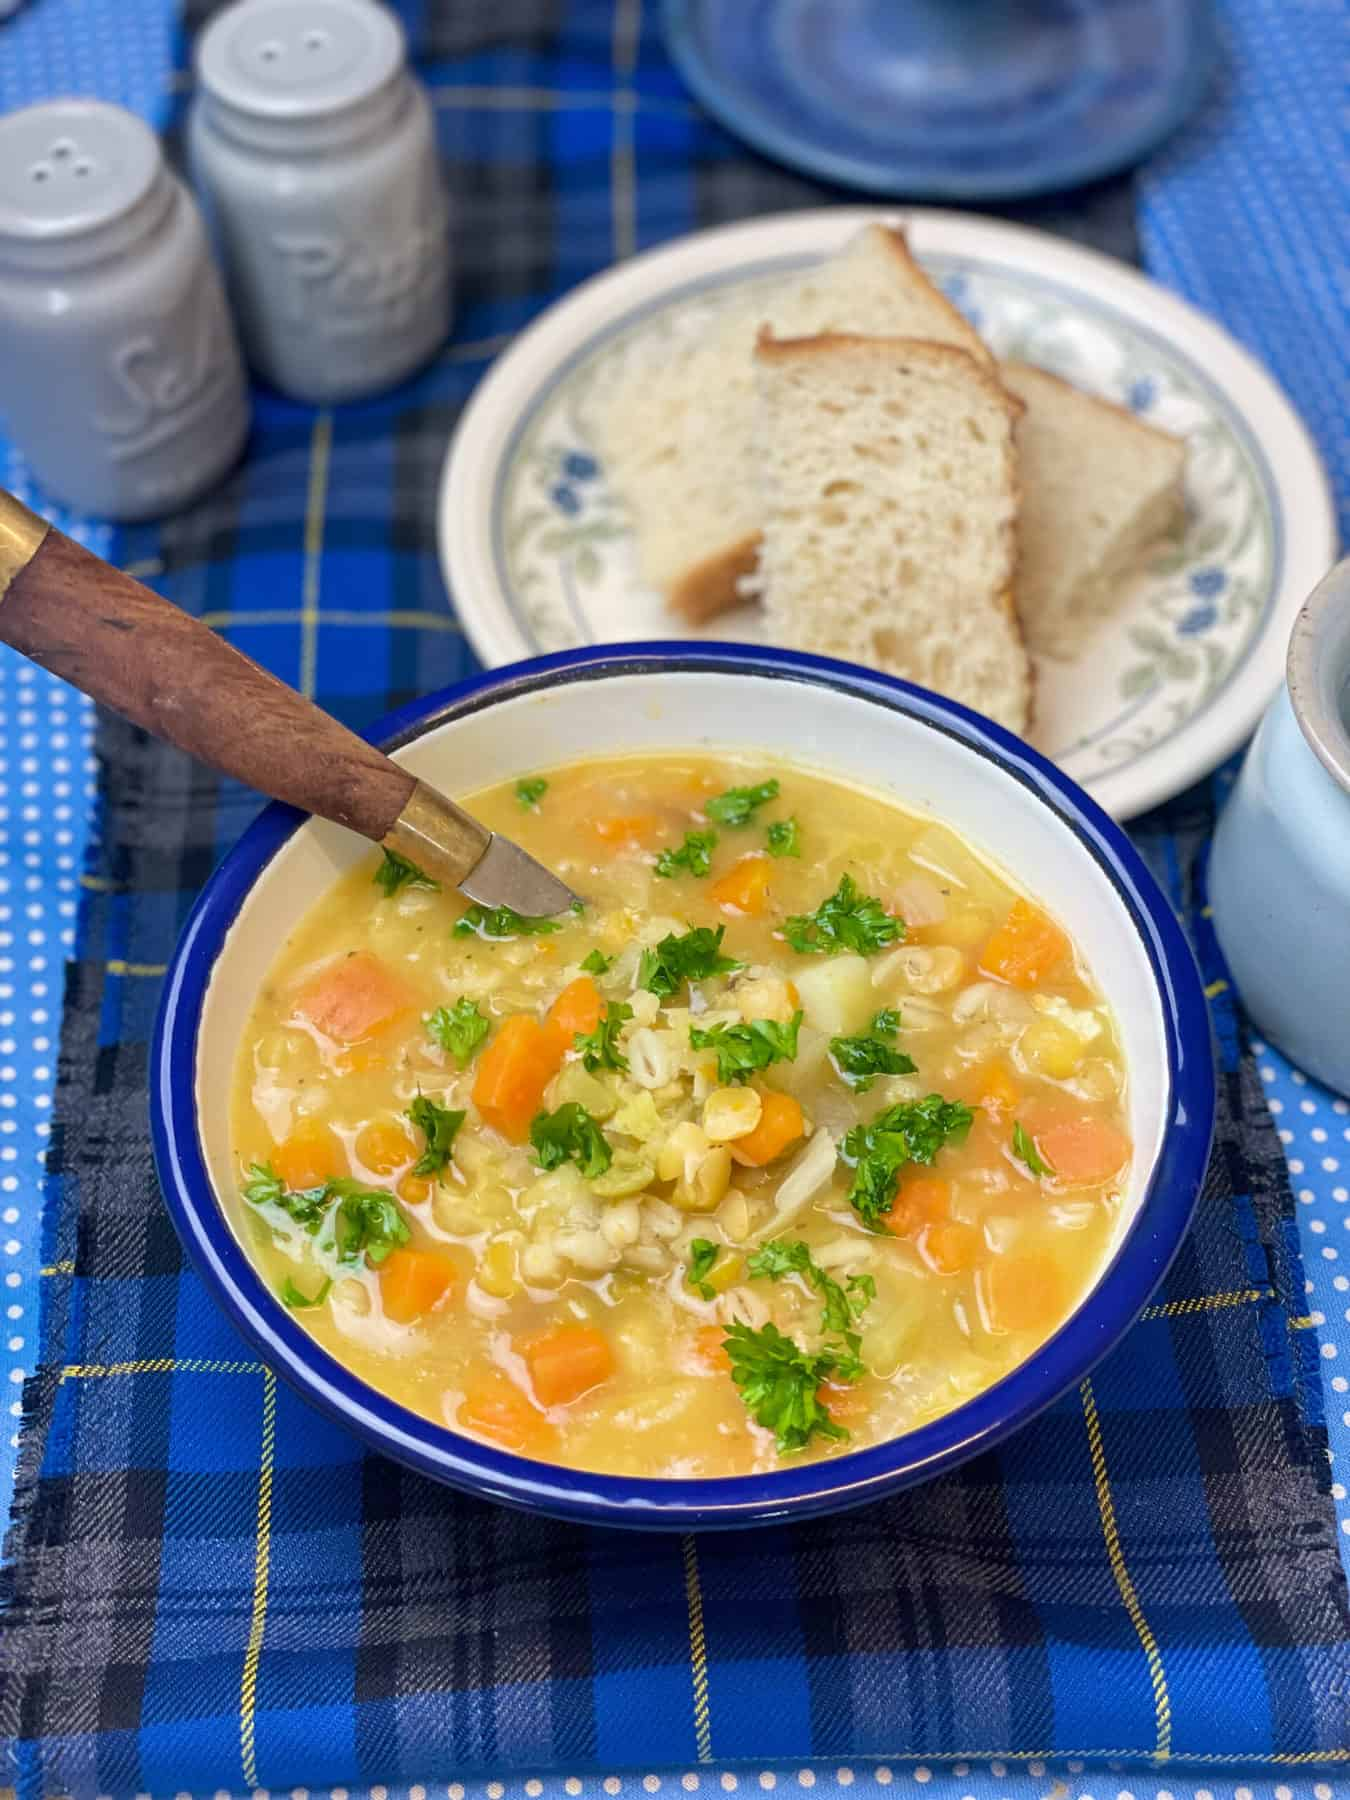 Soup served with crusty bread and chopped parsley, blue tartan background.